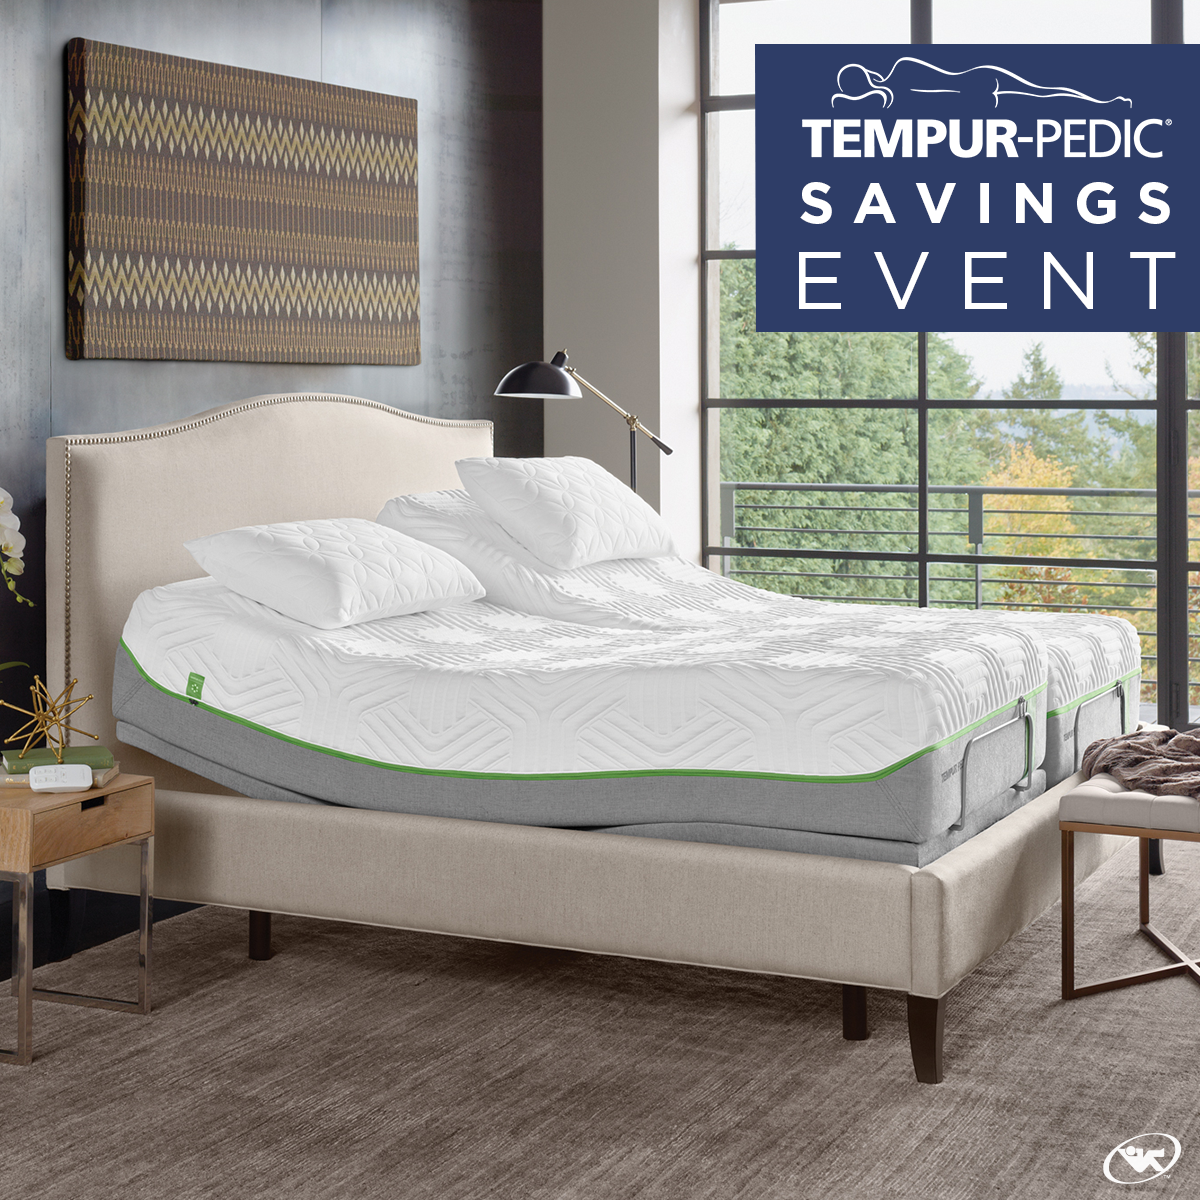 A good night's sleep is a visit away. Try our line of